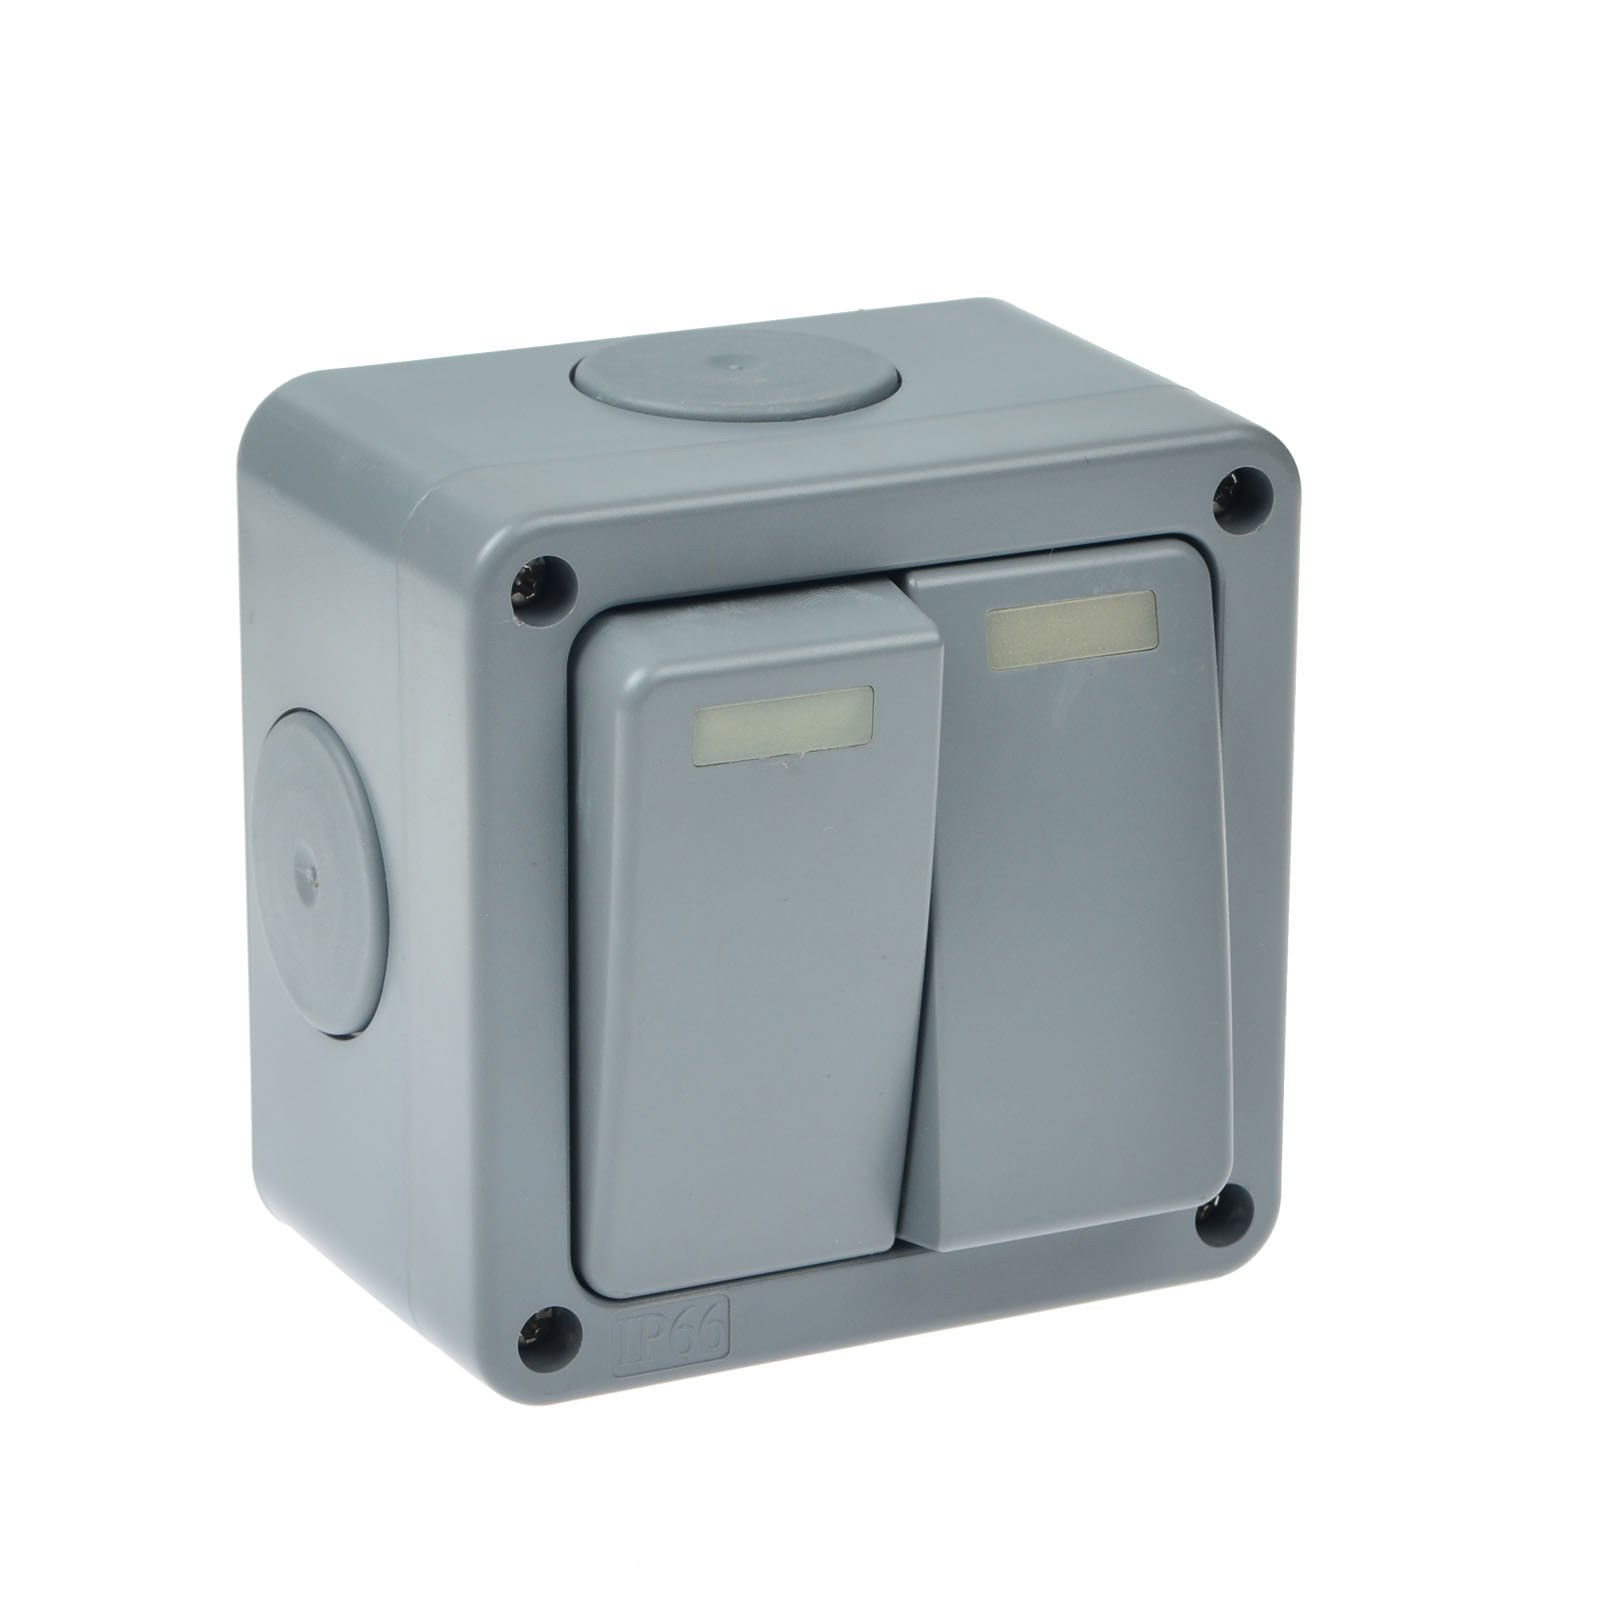 GREENCYCLE HO-035 Weatherproof 2 Gang 2 Way Dual Switch Socket IP66 Rated Wateproof with Multiple 20mm Cable Gland Entry for Outdoor Use, USA Type